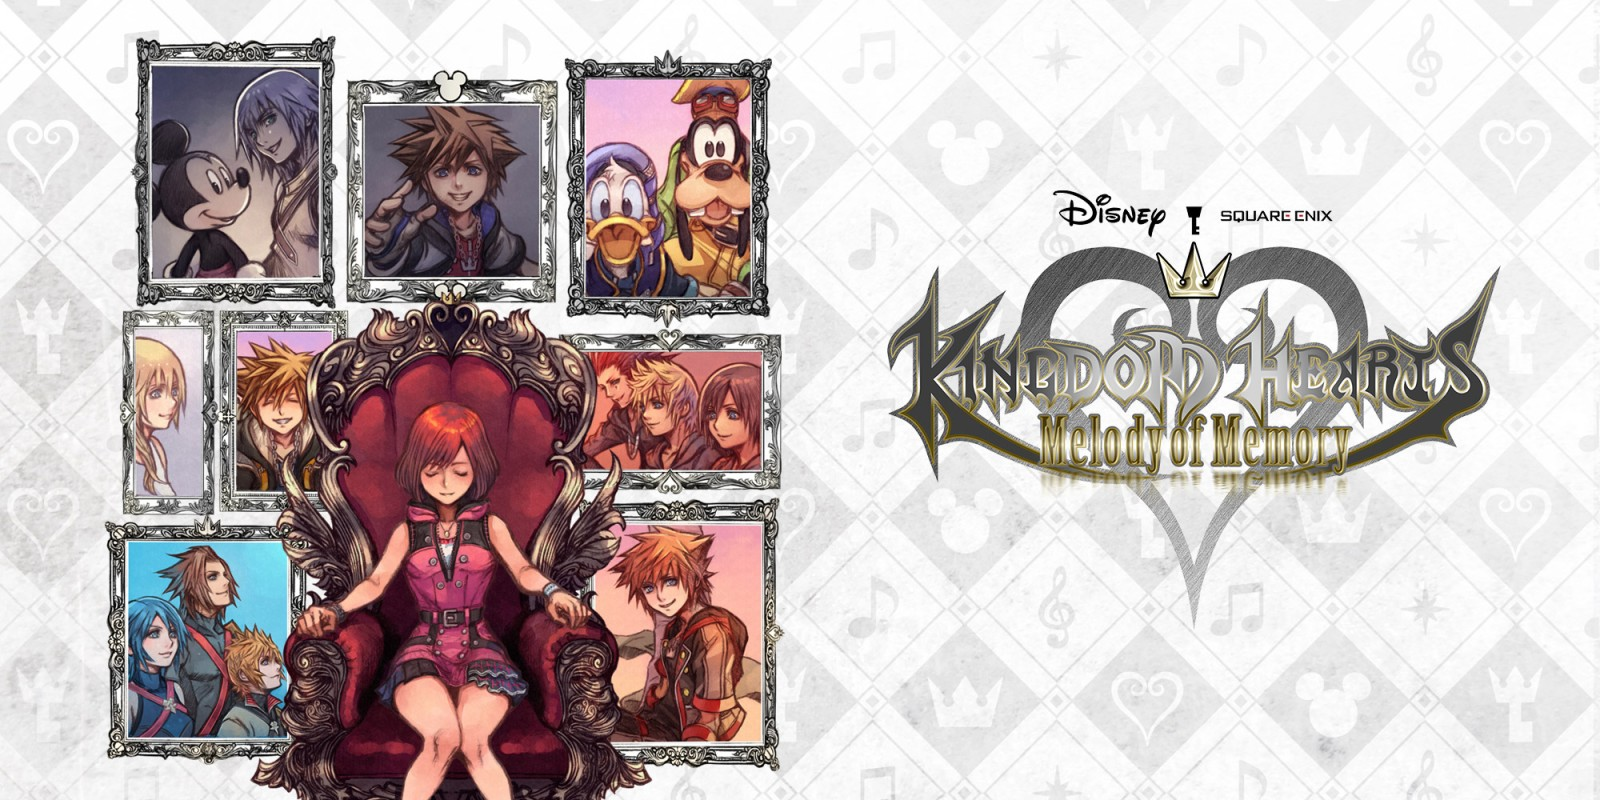 Kingdom Hearts Melody of Memory fecha destacada